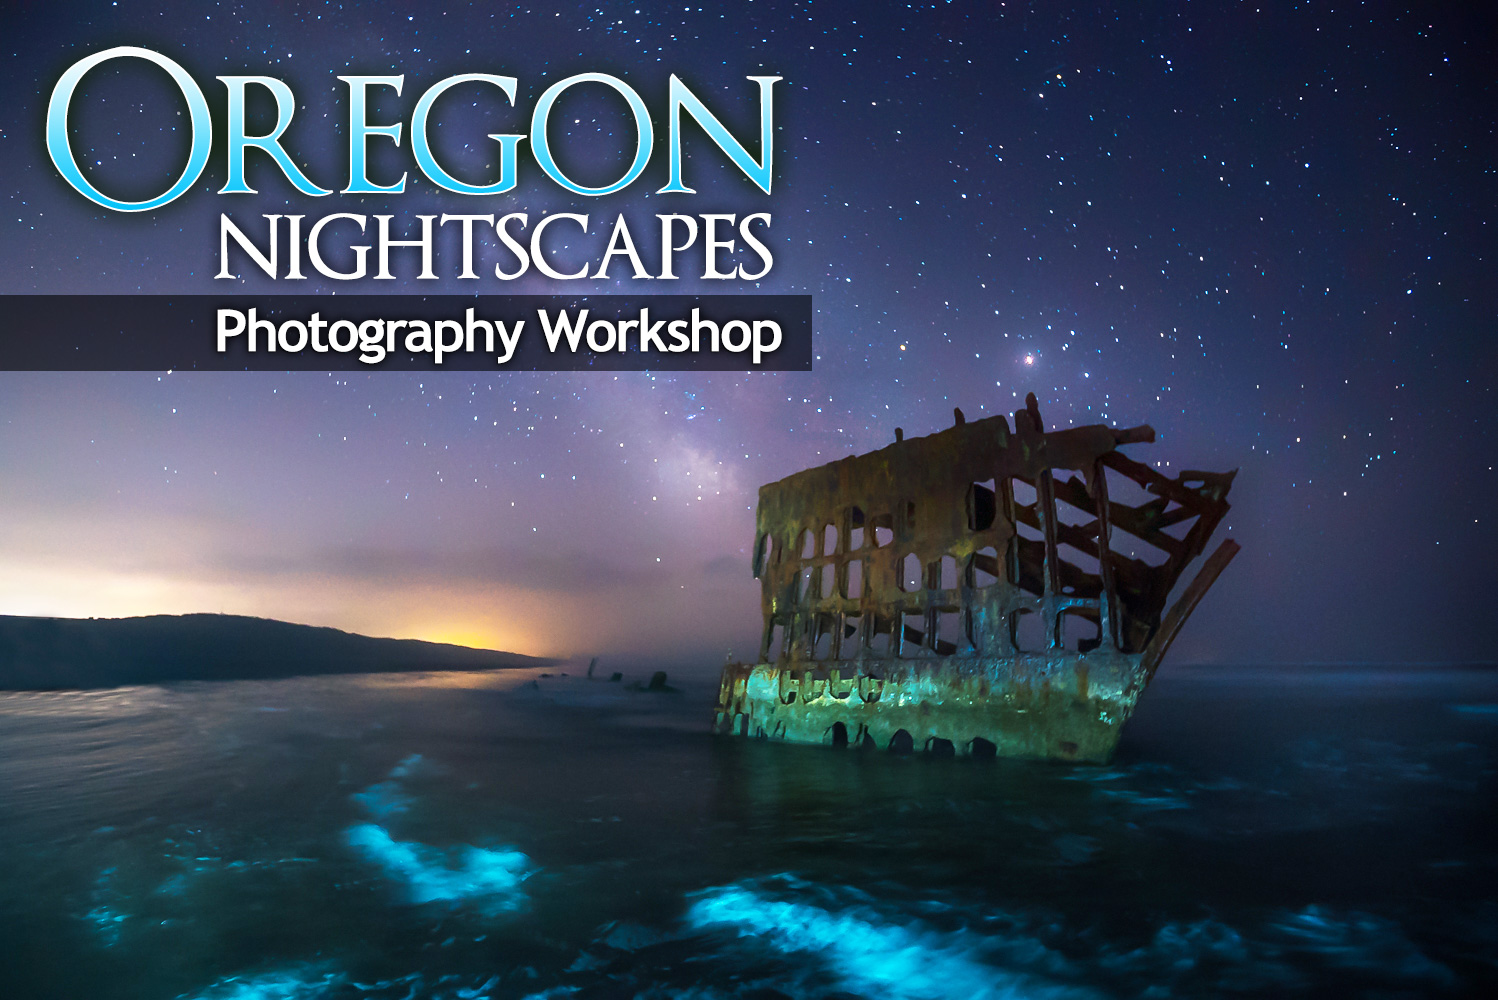 Oregon Nightscapes Photography Workshop